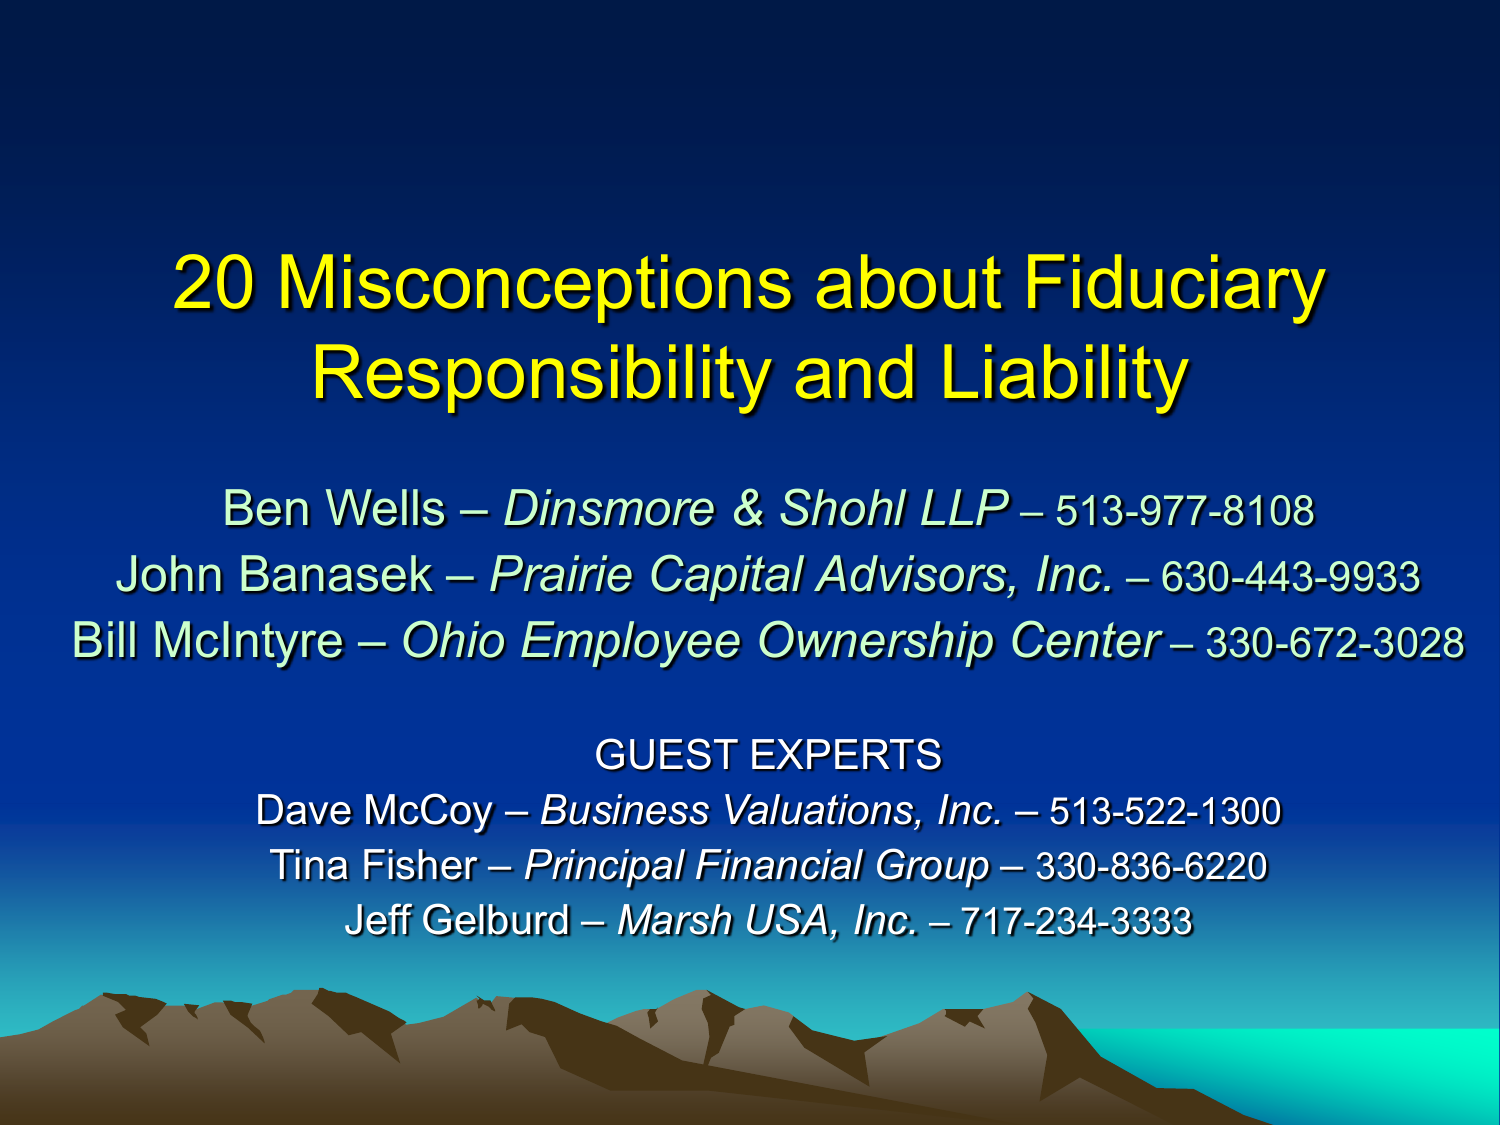 20 Misconceptions about Fiduciary Responsibility and Liability